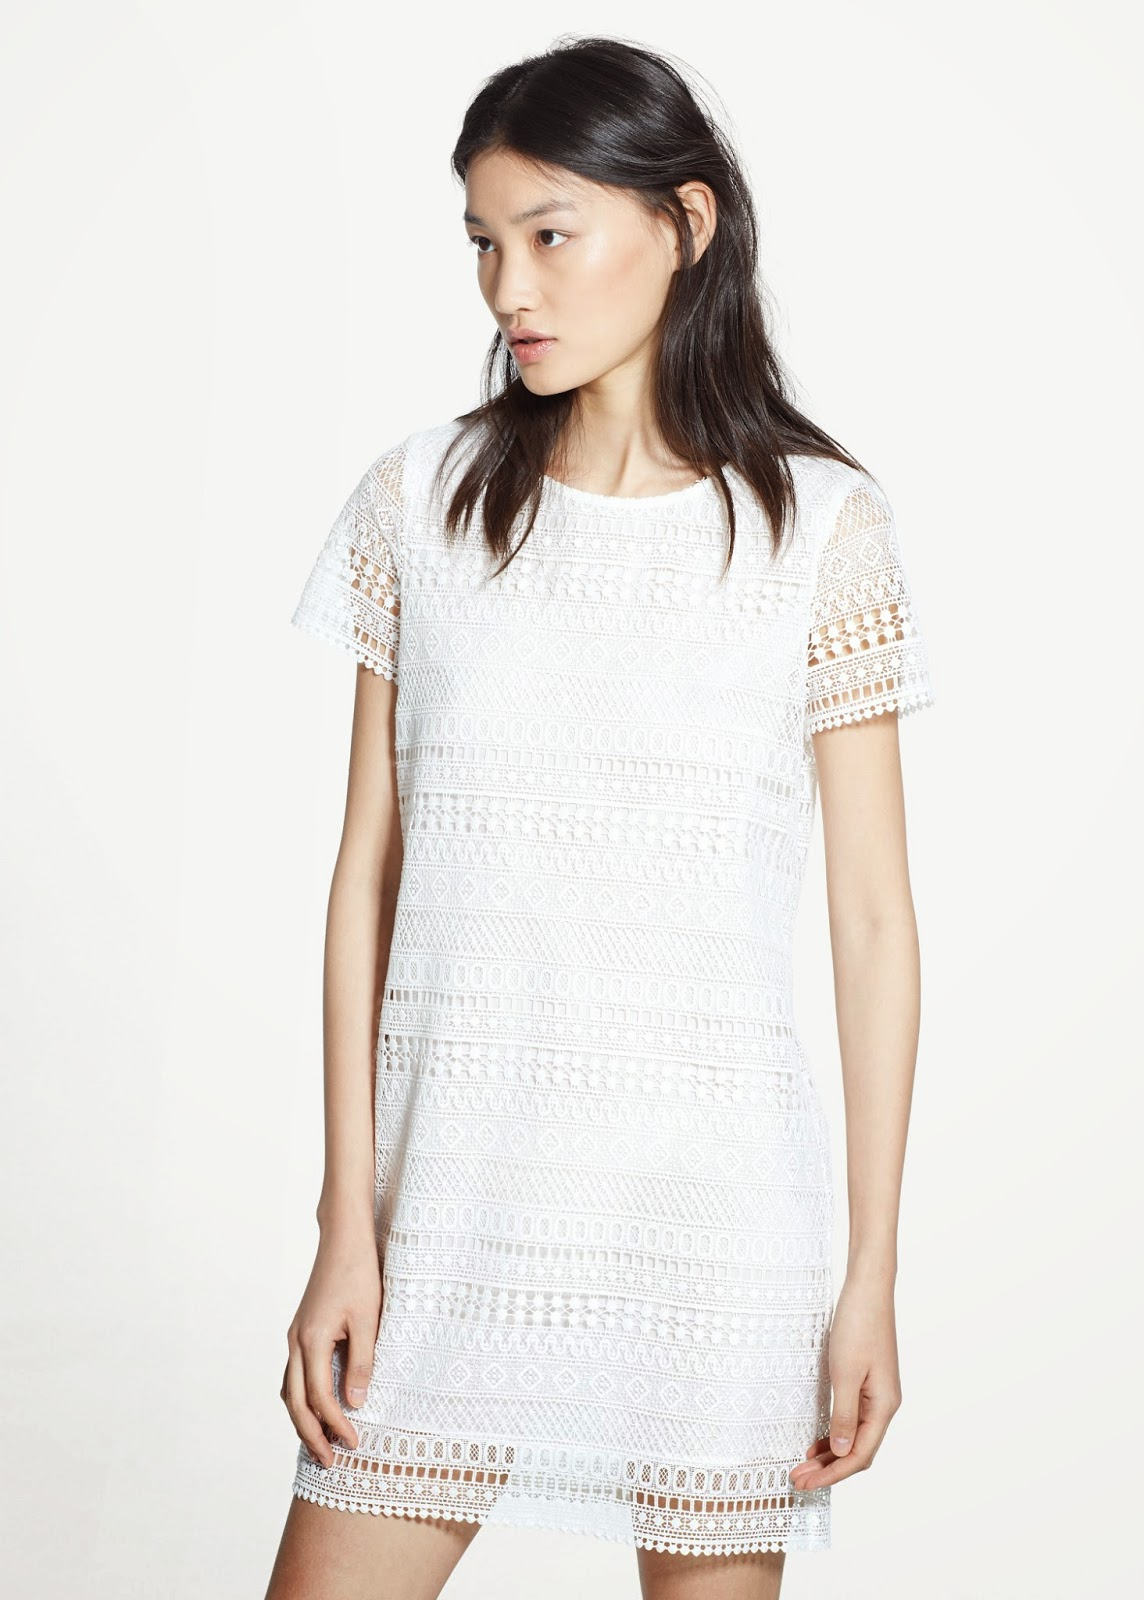 mango white crochet dress,